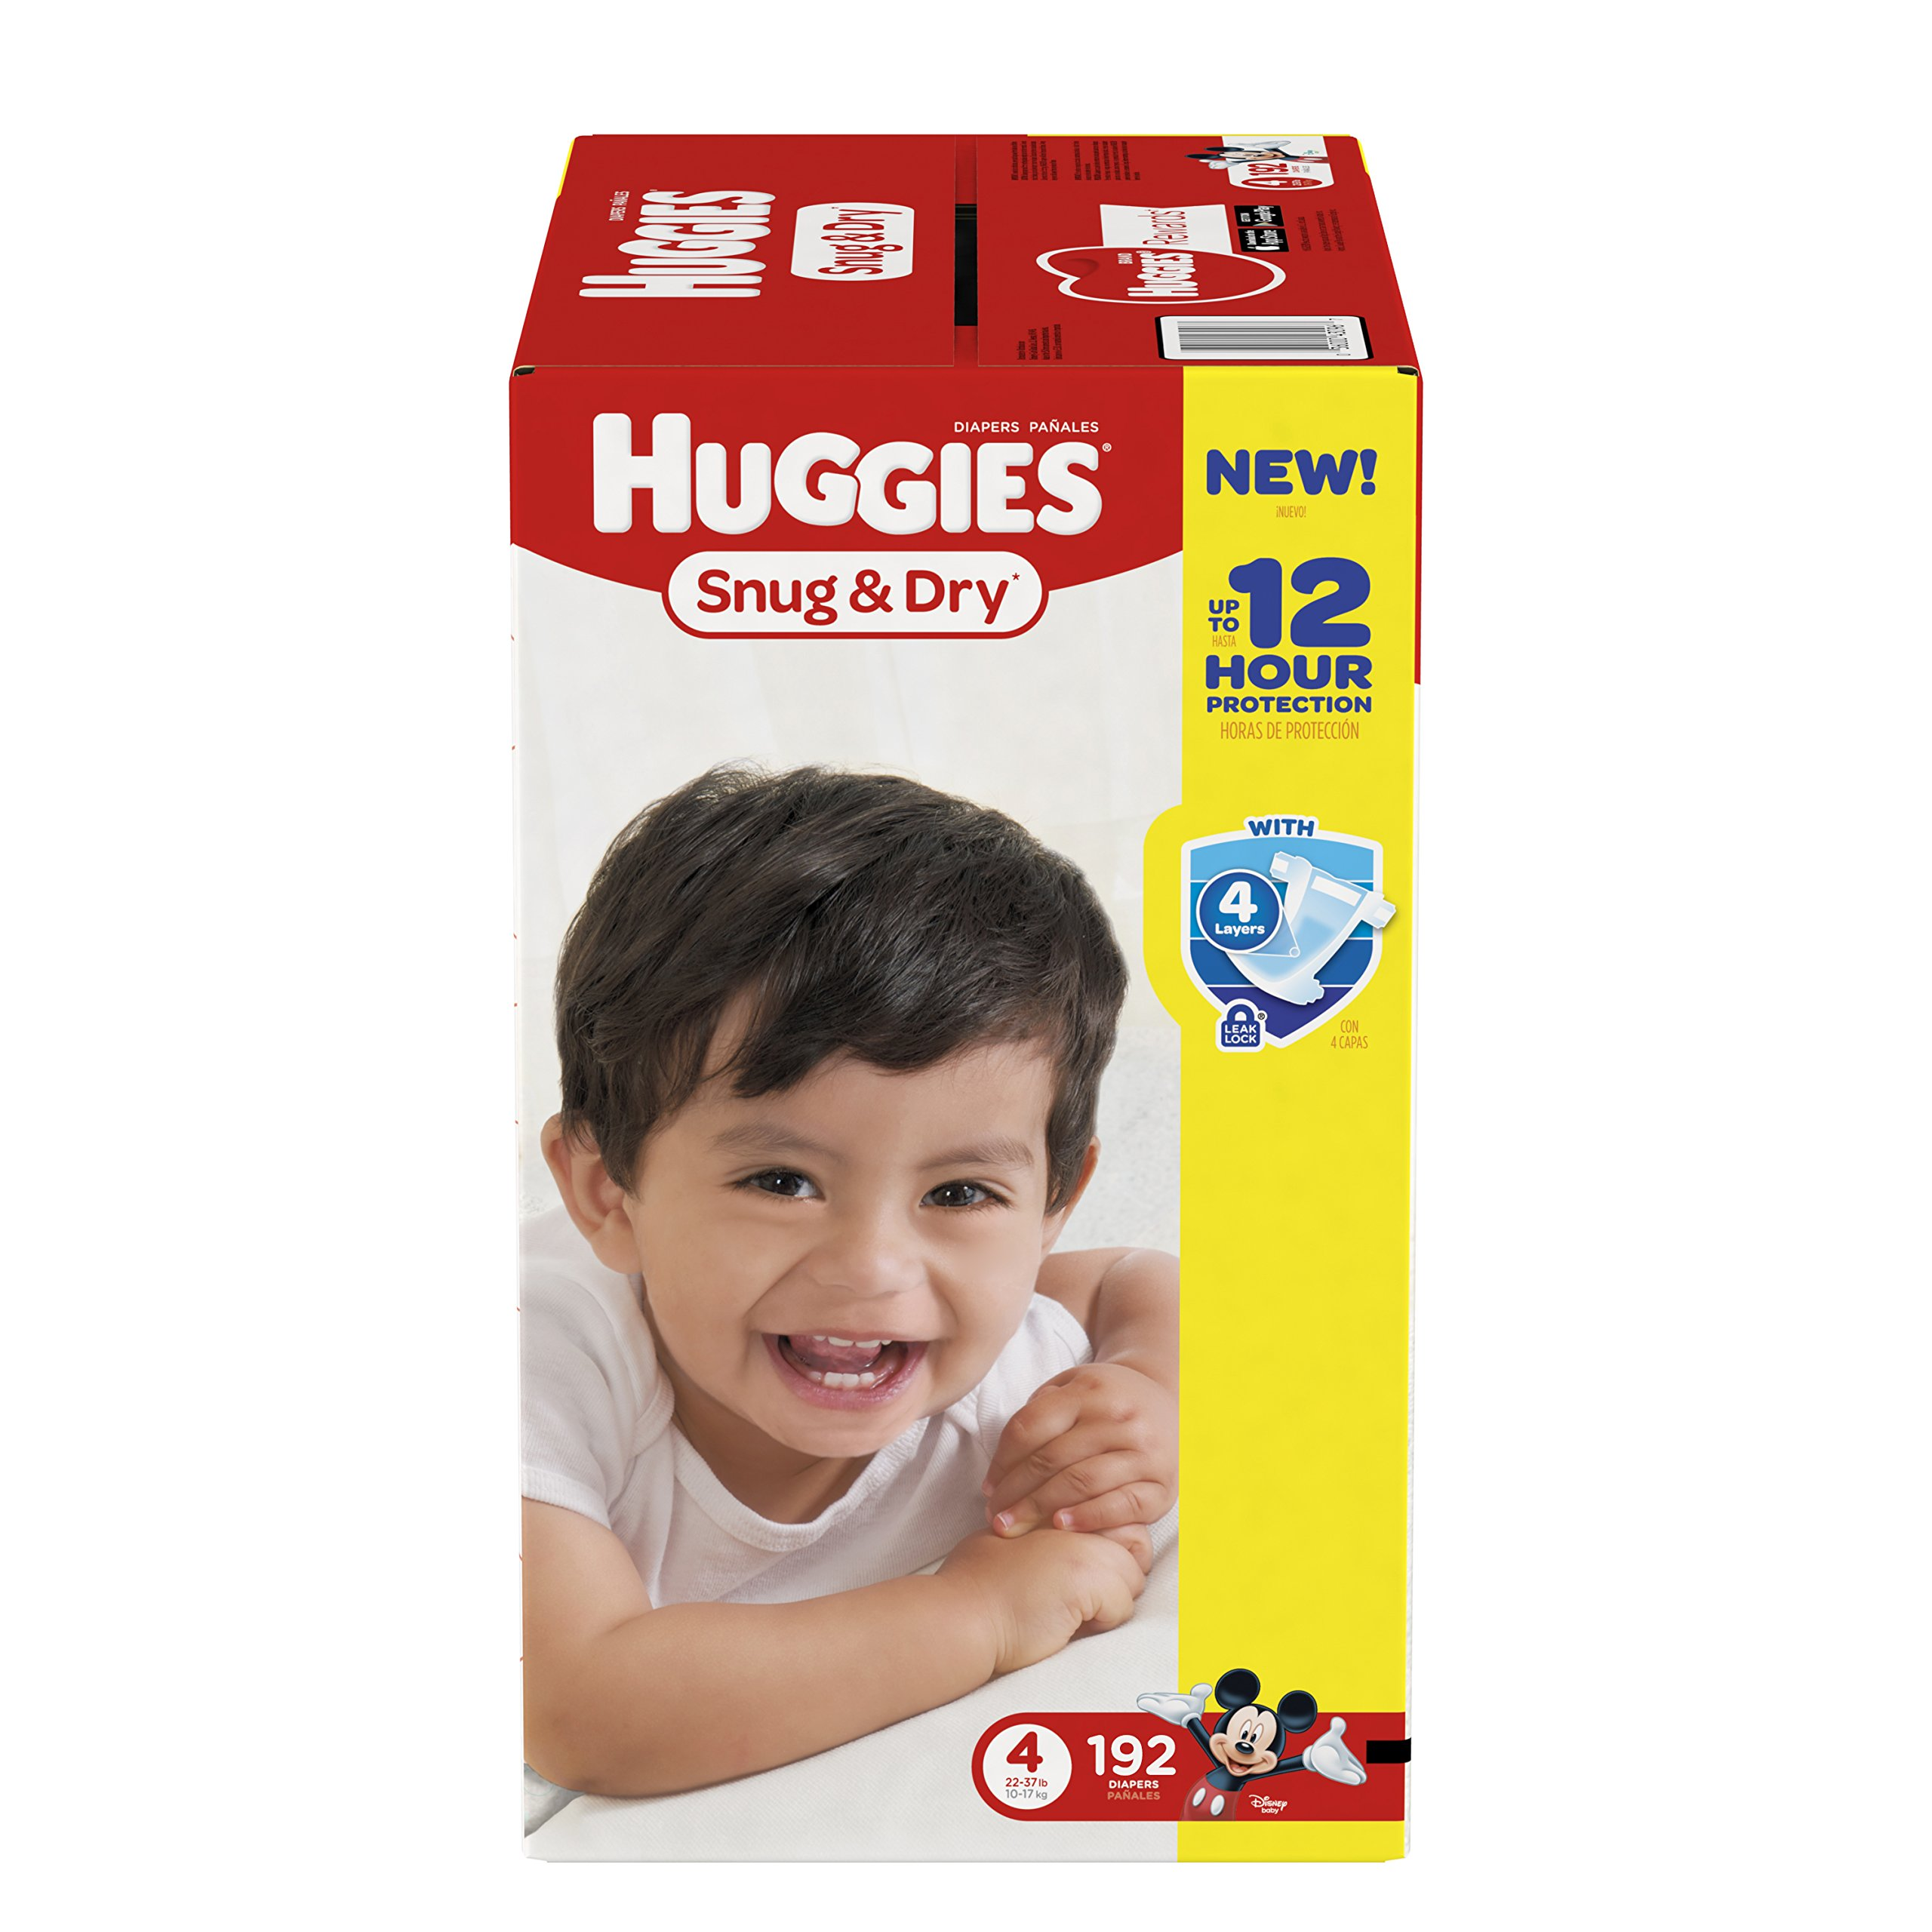 Huggies Snug Dry Diapers Review Experienced Mommy